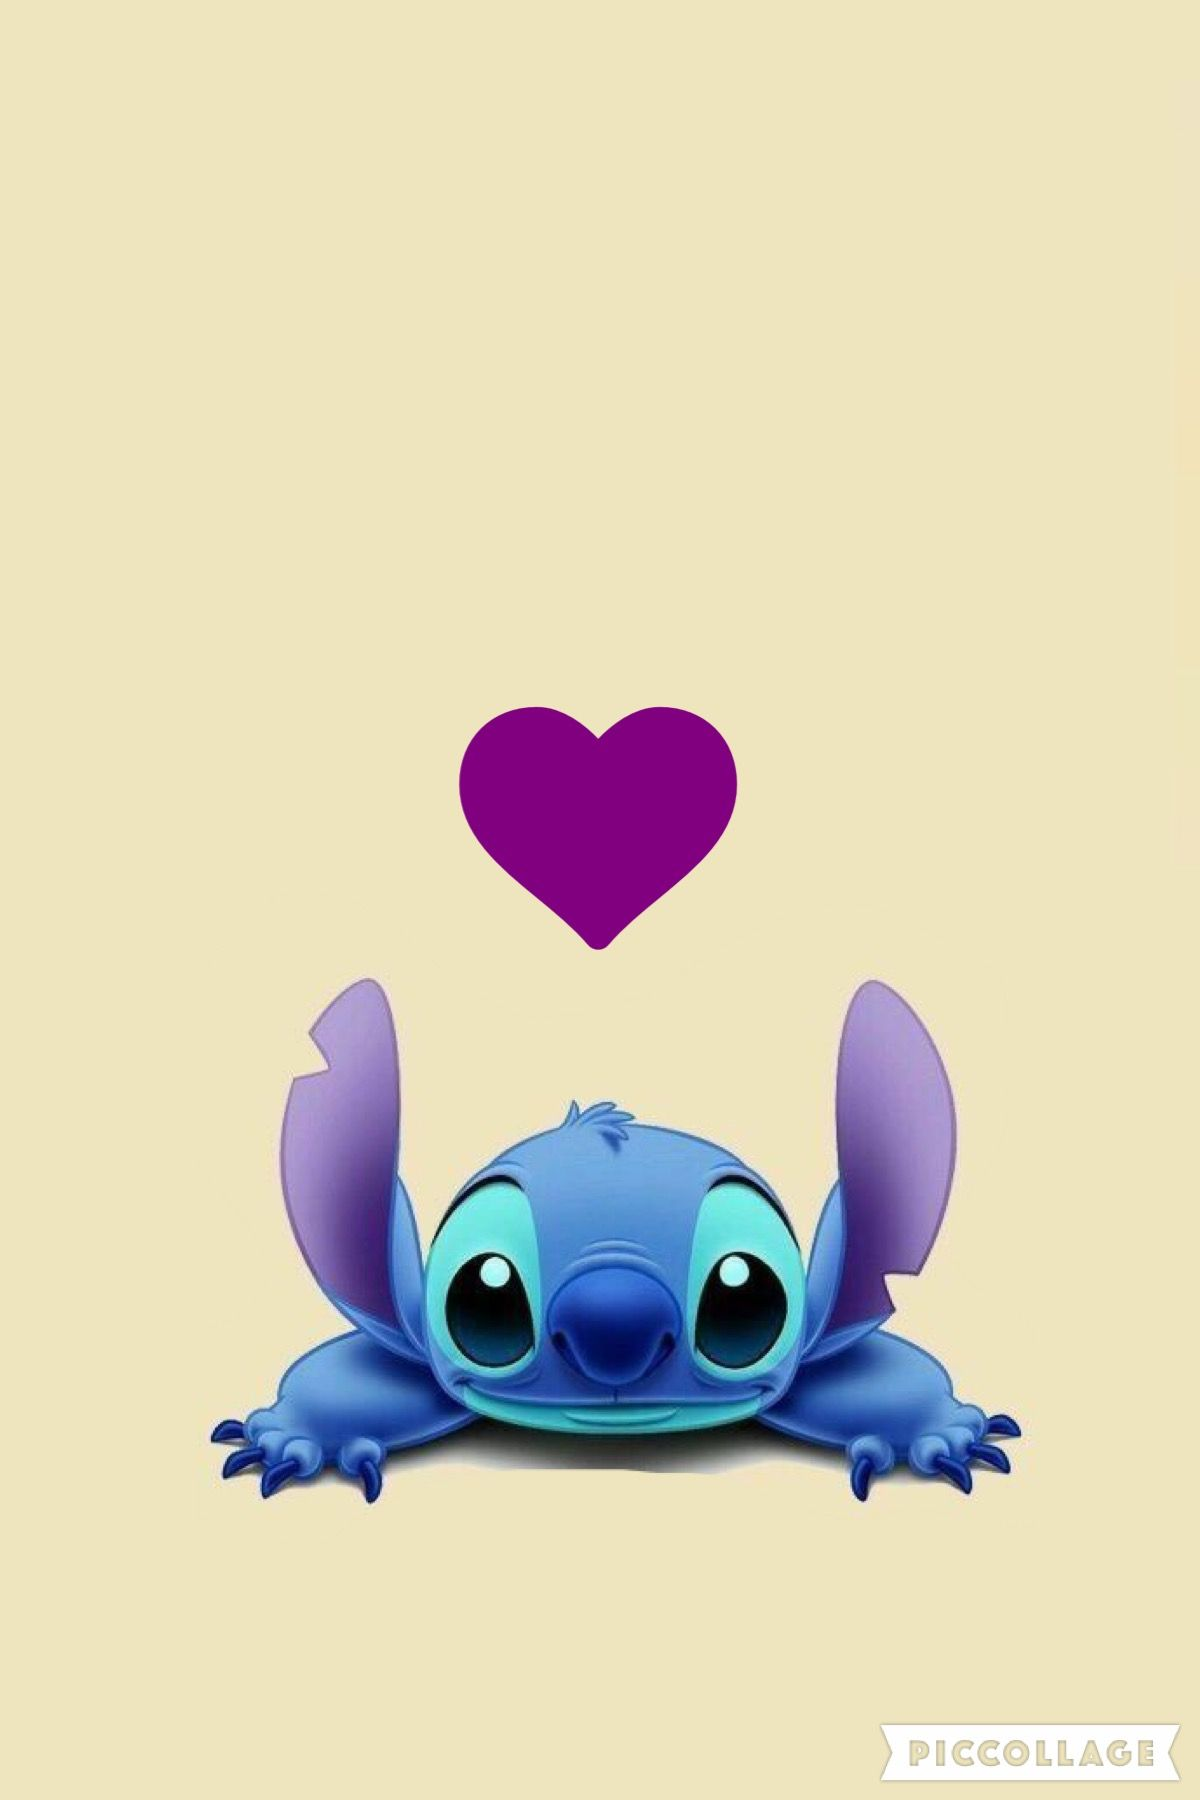 Iphone 6 wallpaper tumblr stitch - Me Encanta Stich More